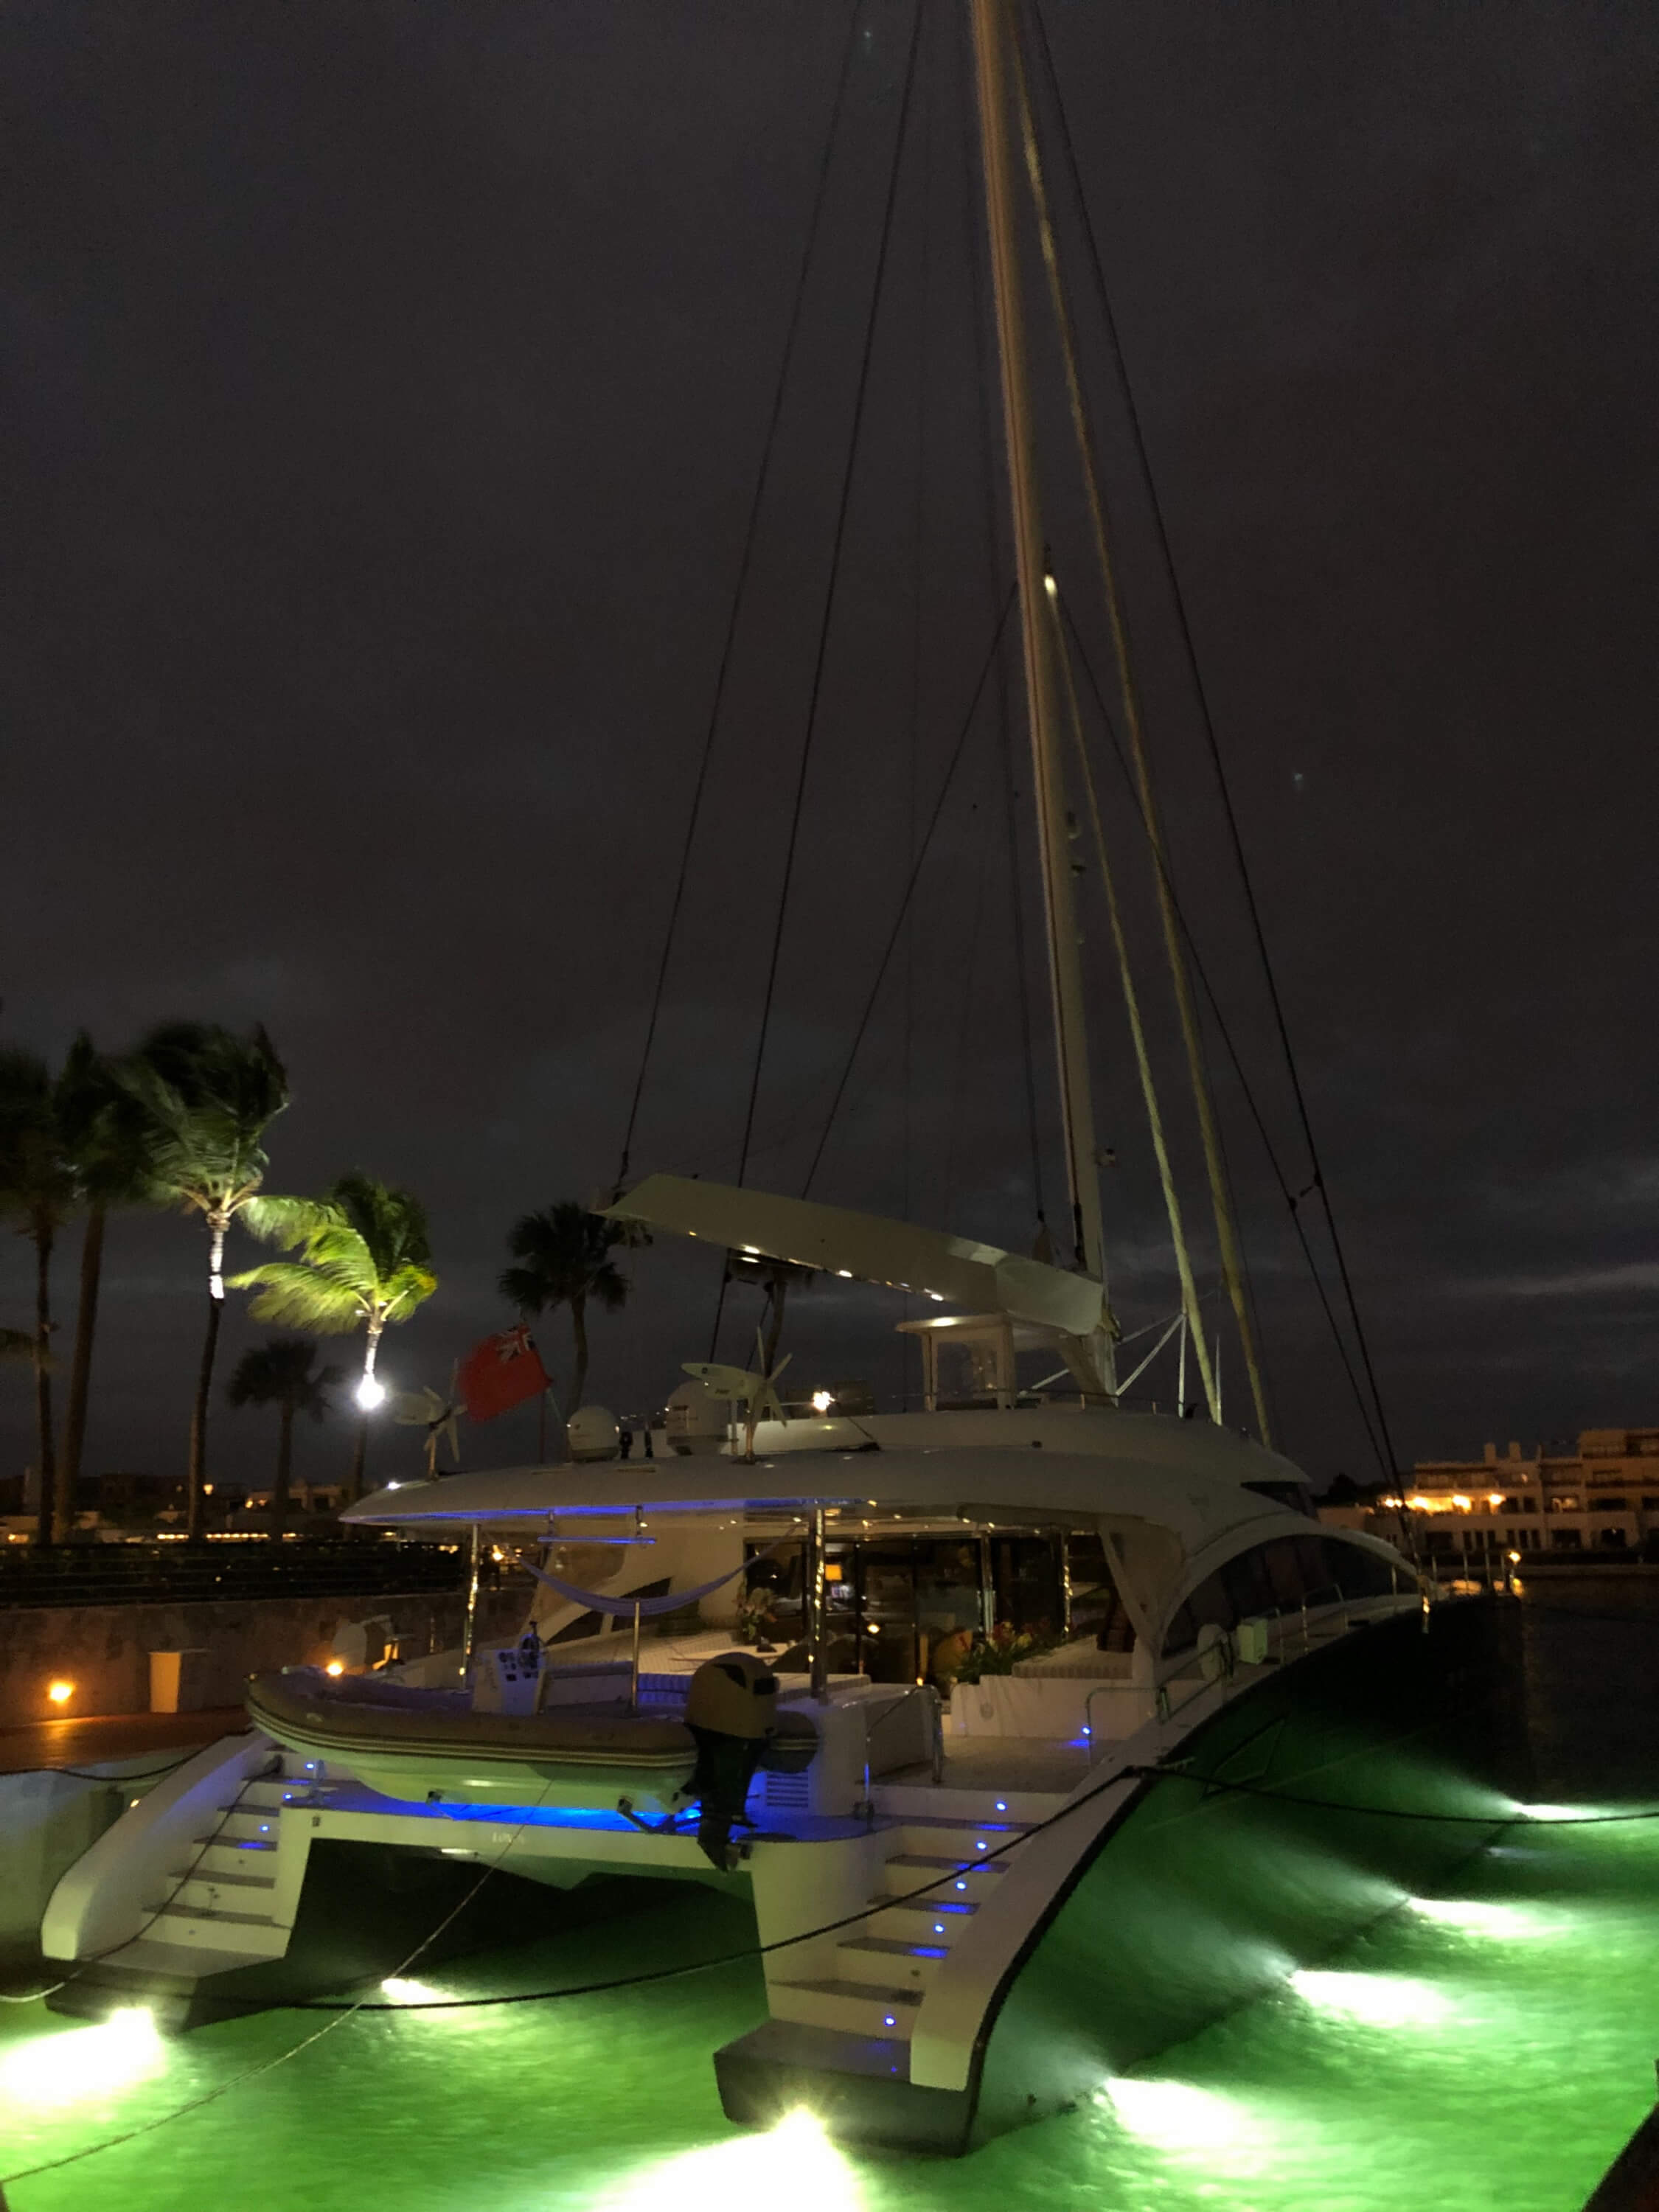 Used Sail Catamarans for Sale 2012 Sunreef 82 DD Boat Highlights